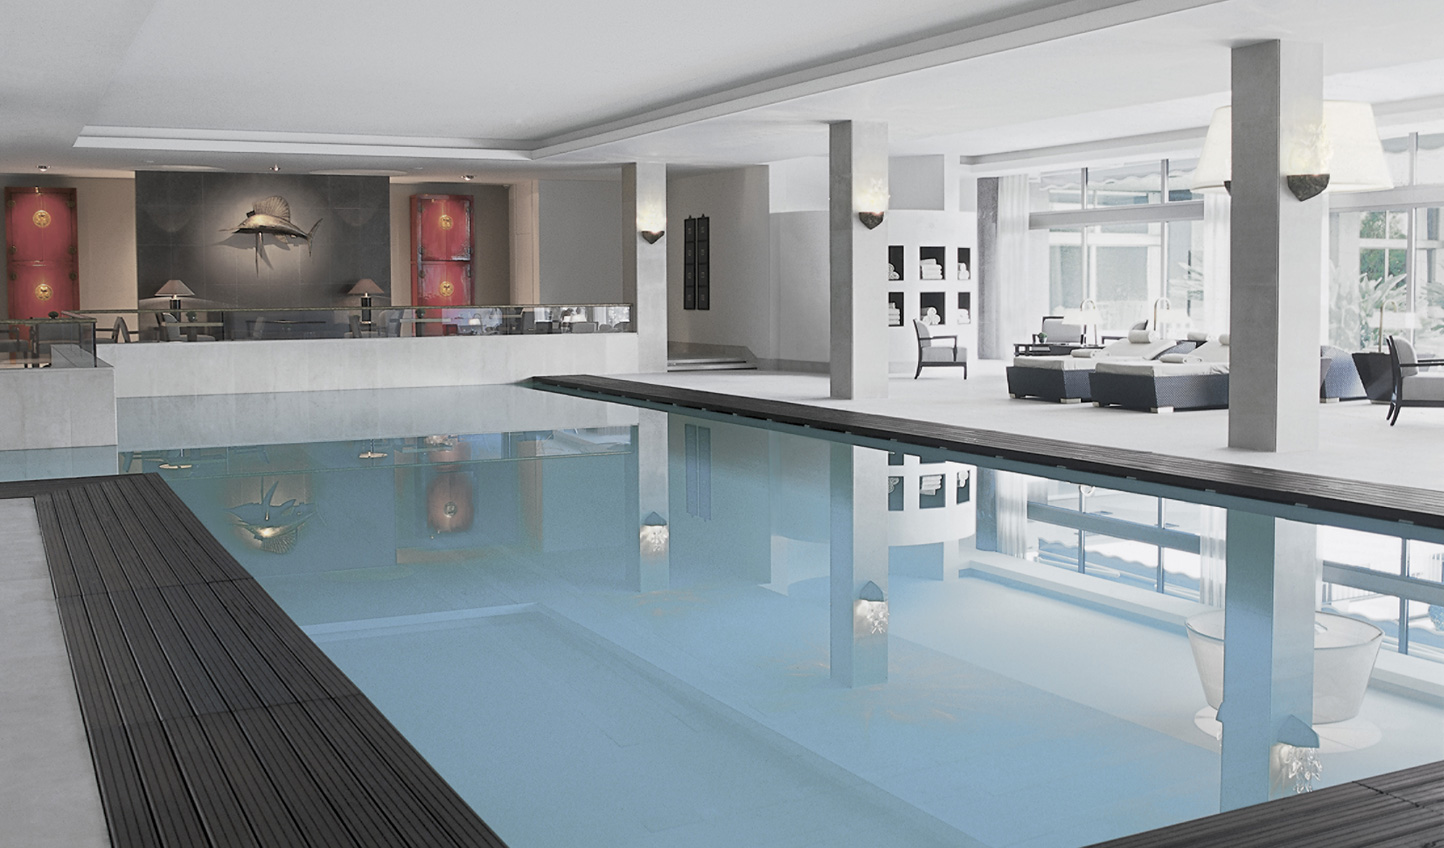 Al that sightseeing can be hard work - head to the spa to unwind